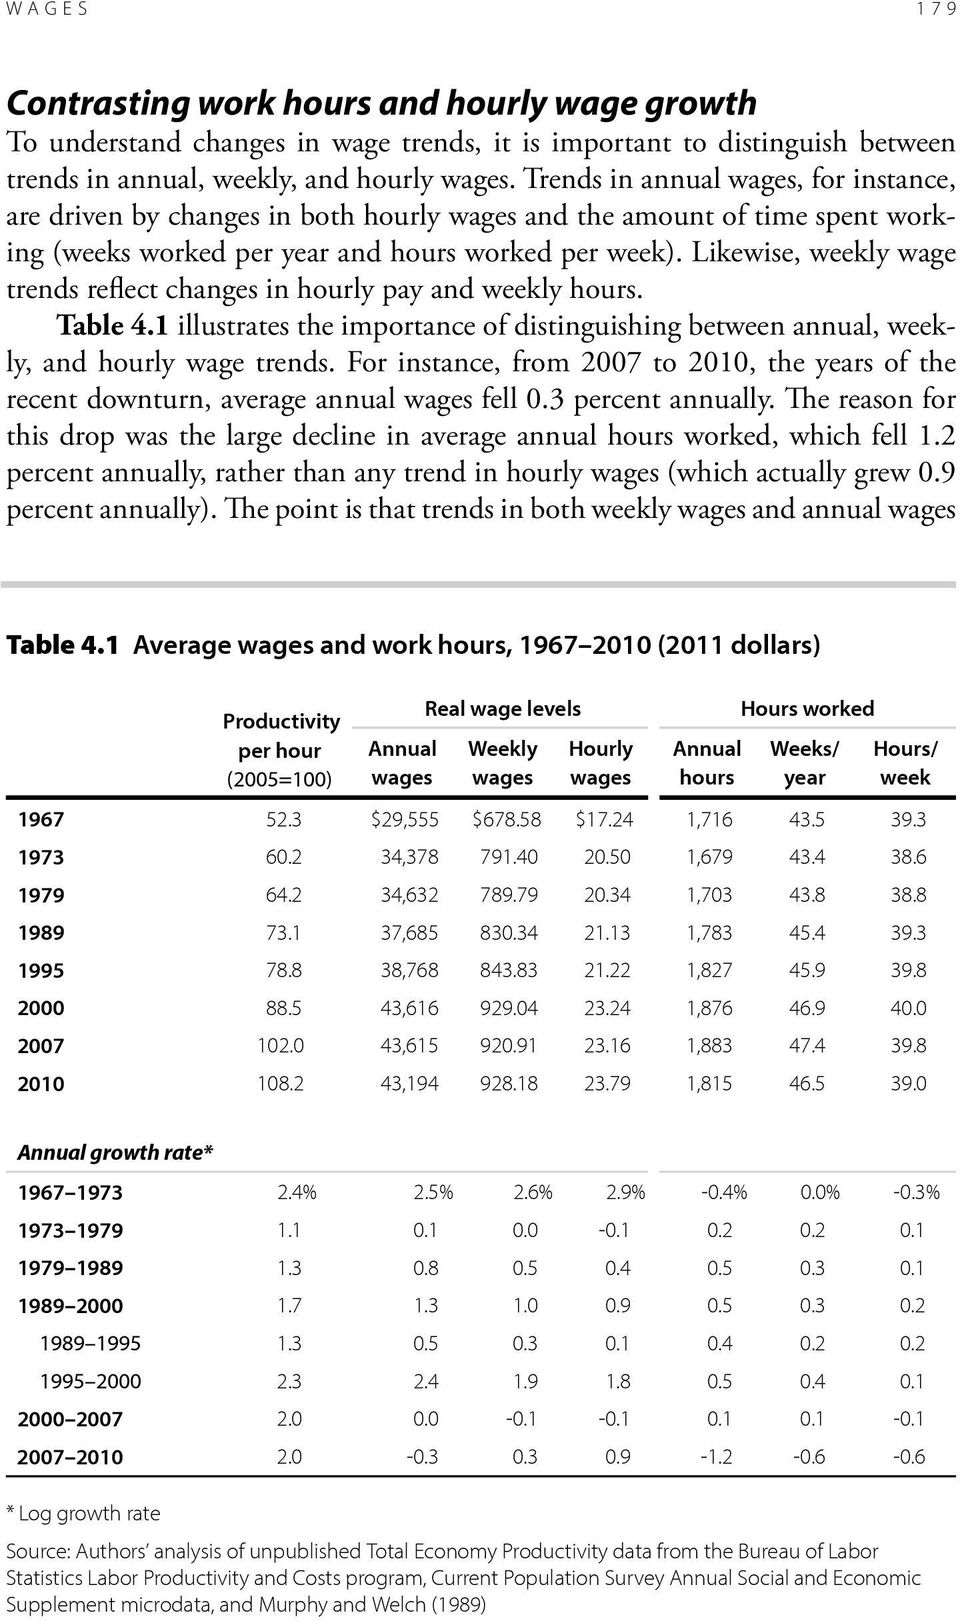 Likewise, weekly wage trends reflect changes in hourly pay and weekly hours. Table 4.1 illustrates the importance of distinguishing between annual, weekly, and hourly wage trends.